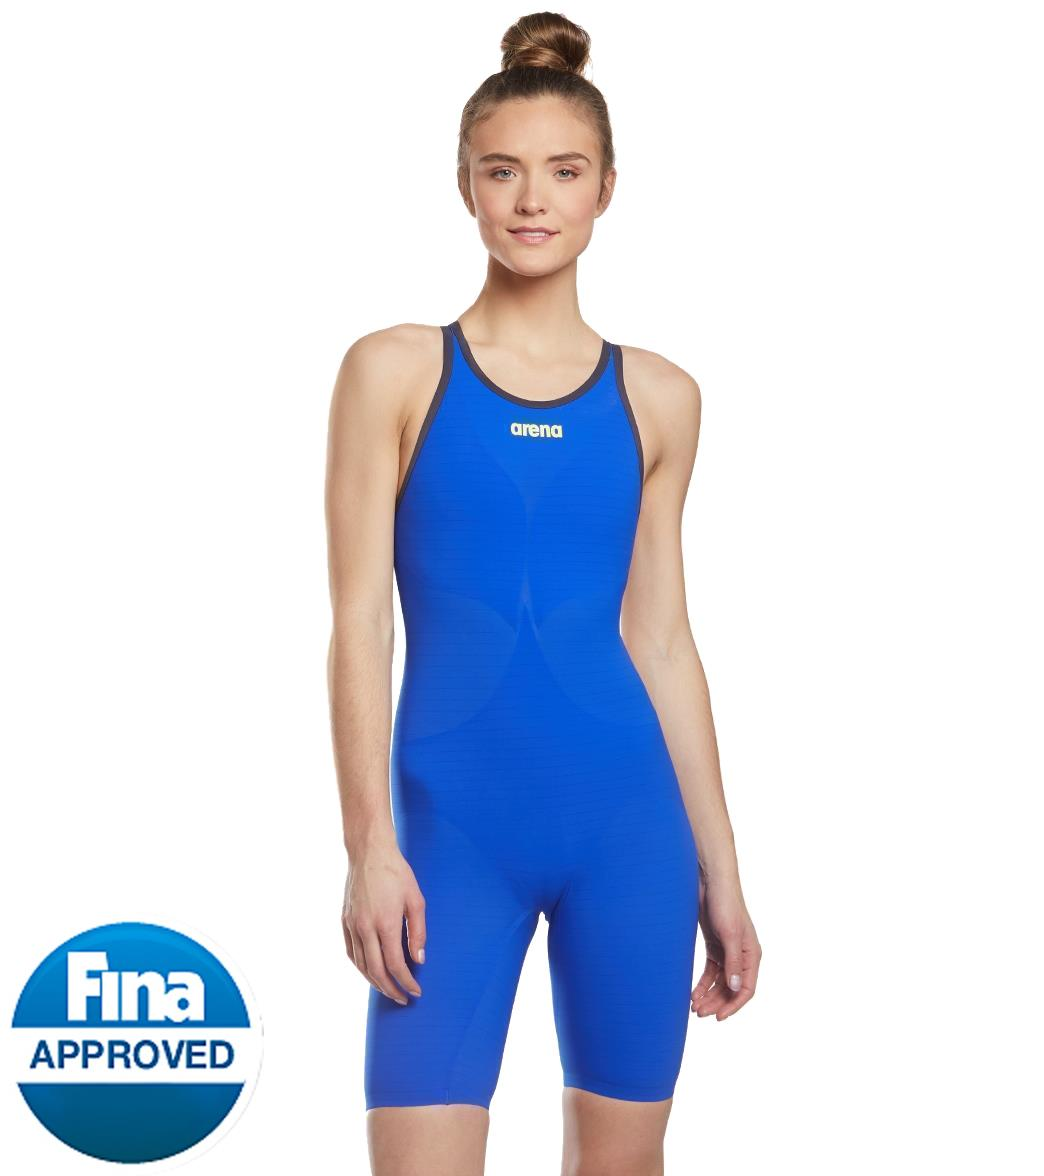 Arena Women's Powerskin Carbon Air2 Tech Suit Swimsuit